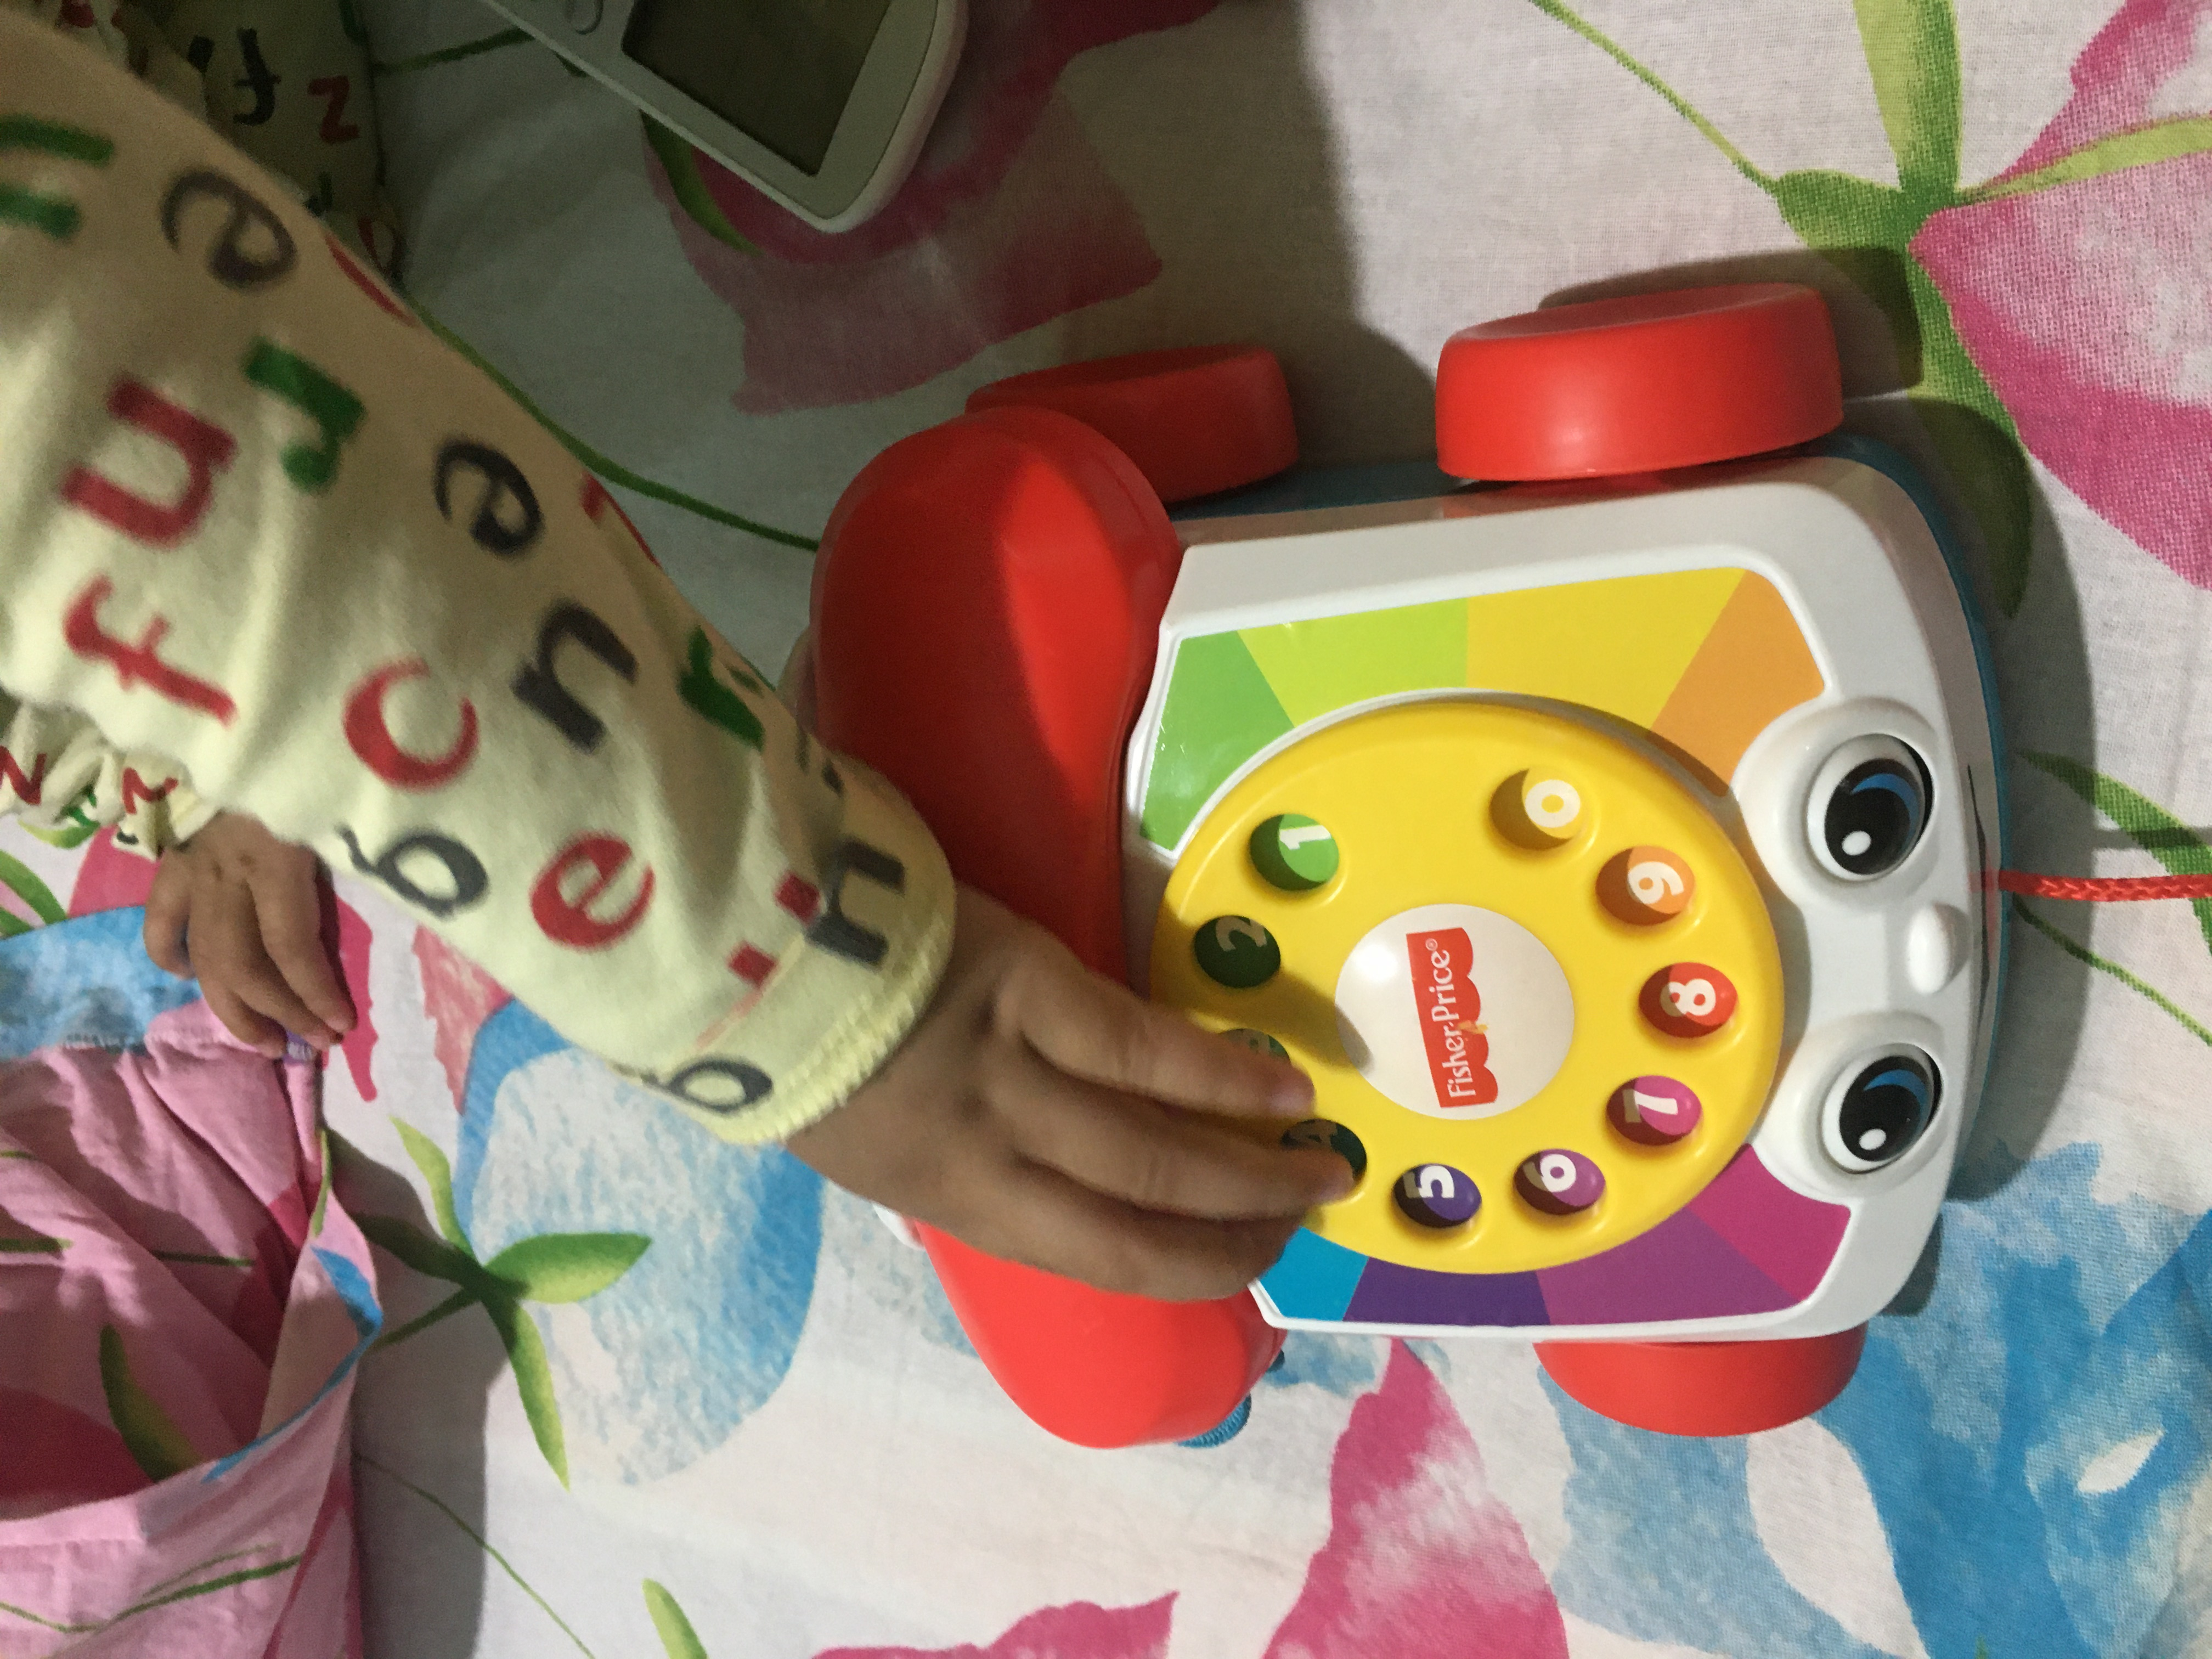 Fisher Price Pull Along Chatter Toy Telephone-Ring ring play time-By mubashira